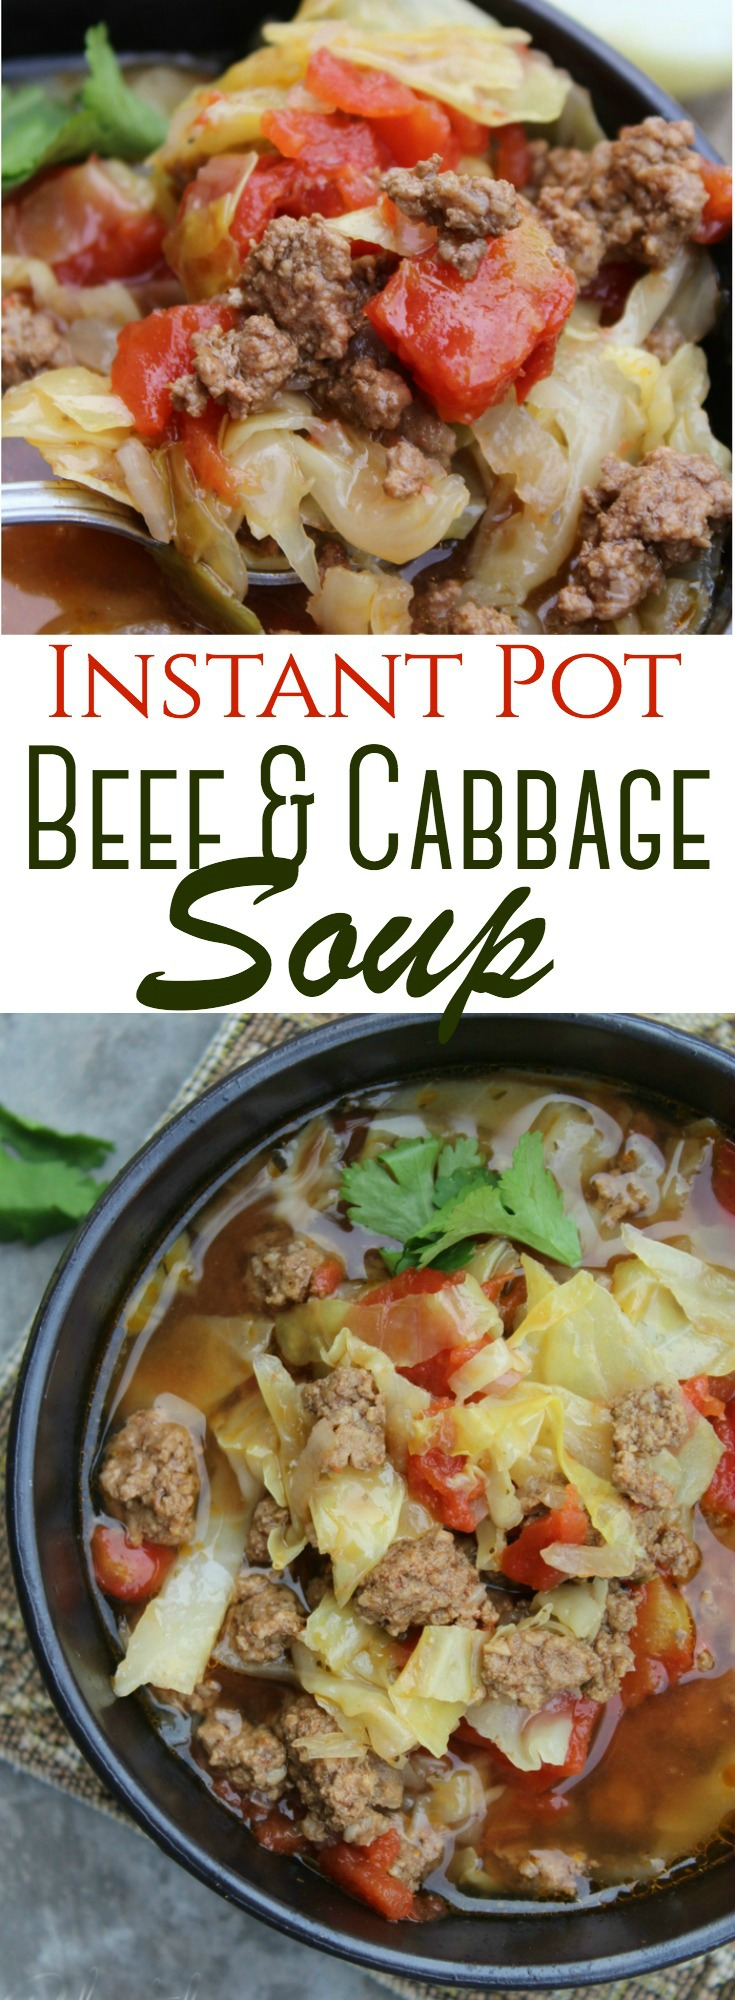 This comforting Instant Pot Beef and Cabbage Soup requires simple ingredients that come together easily in the Instant Pot for a comforting family meal!